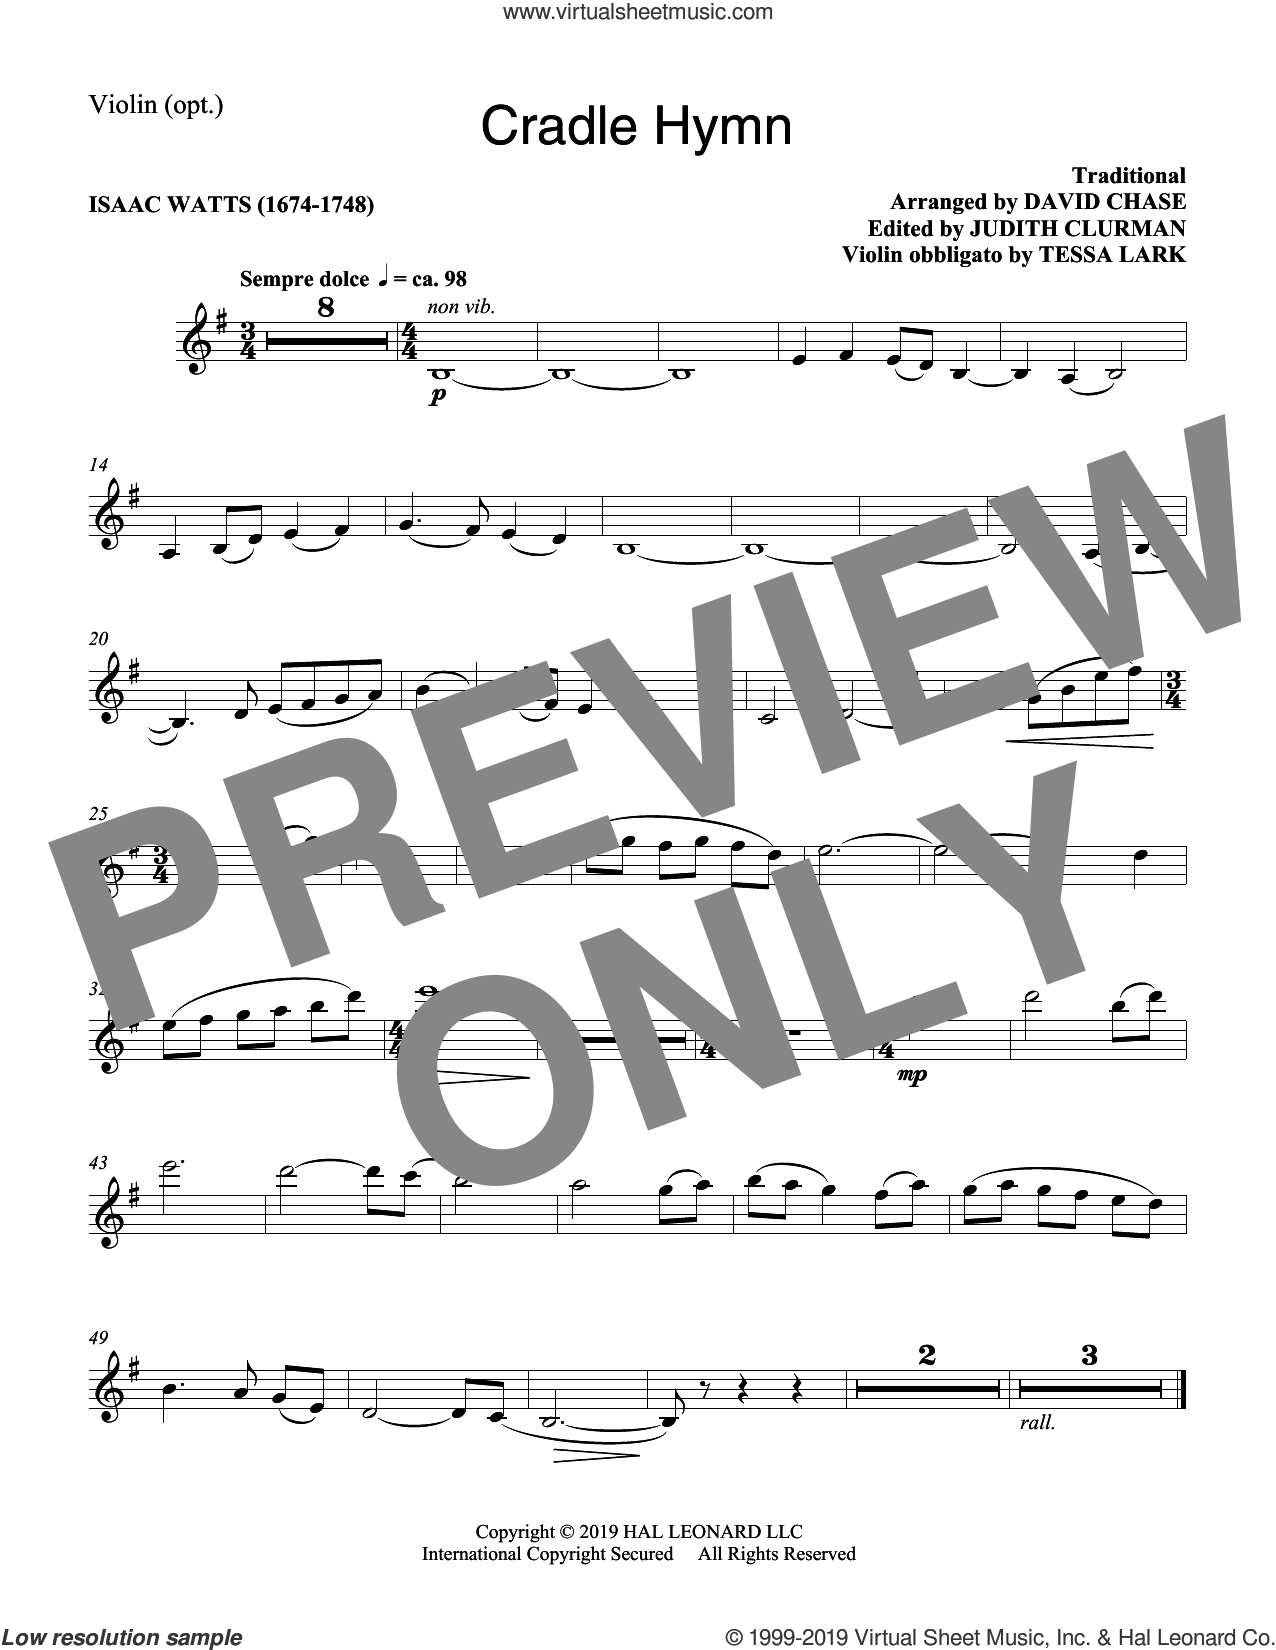 Cradle Hymn (arr. David Chase) sheet music for orchestra/band (violin) by Traditional Hymn and David Chase, intermediate skill level